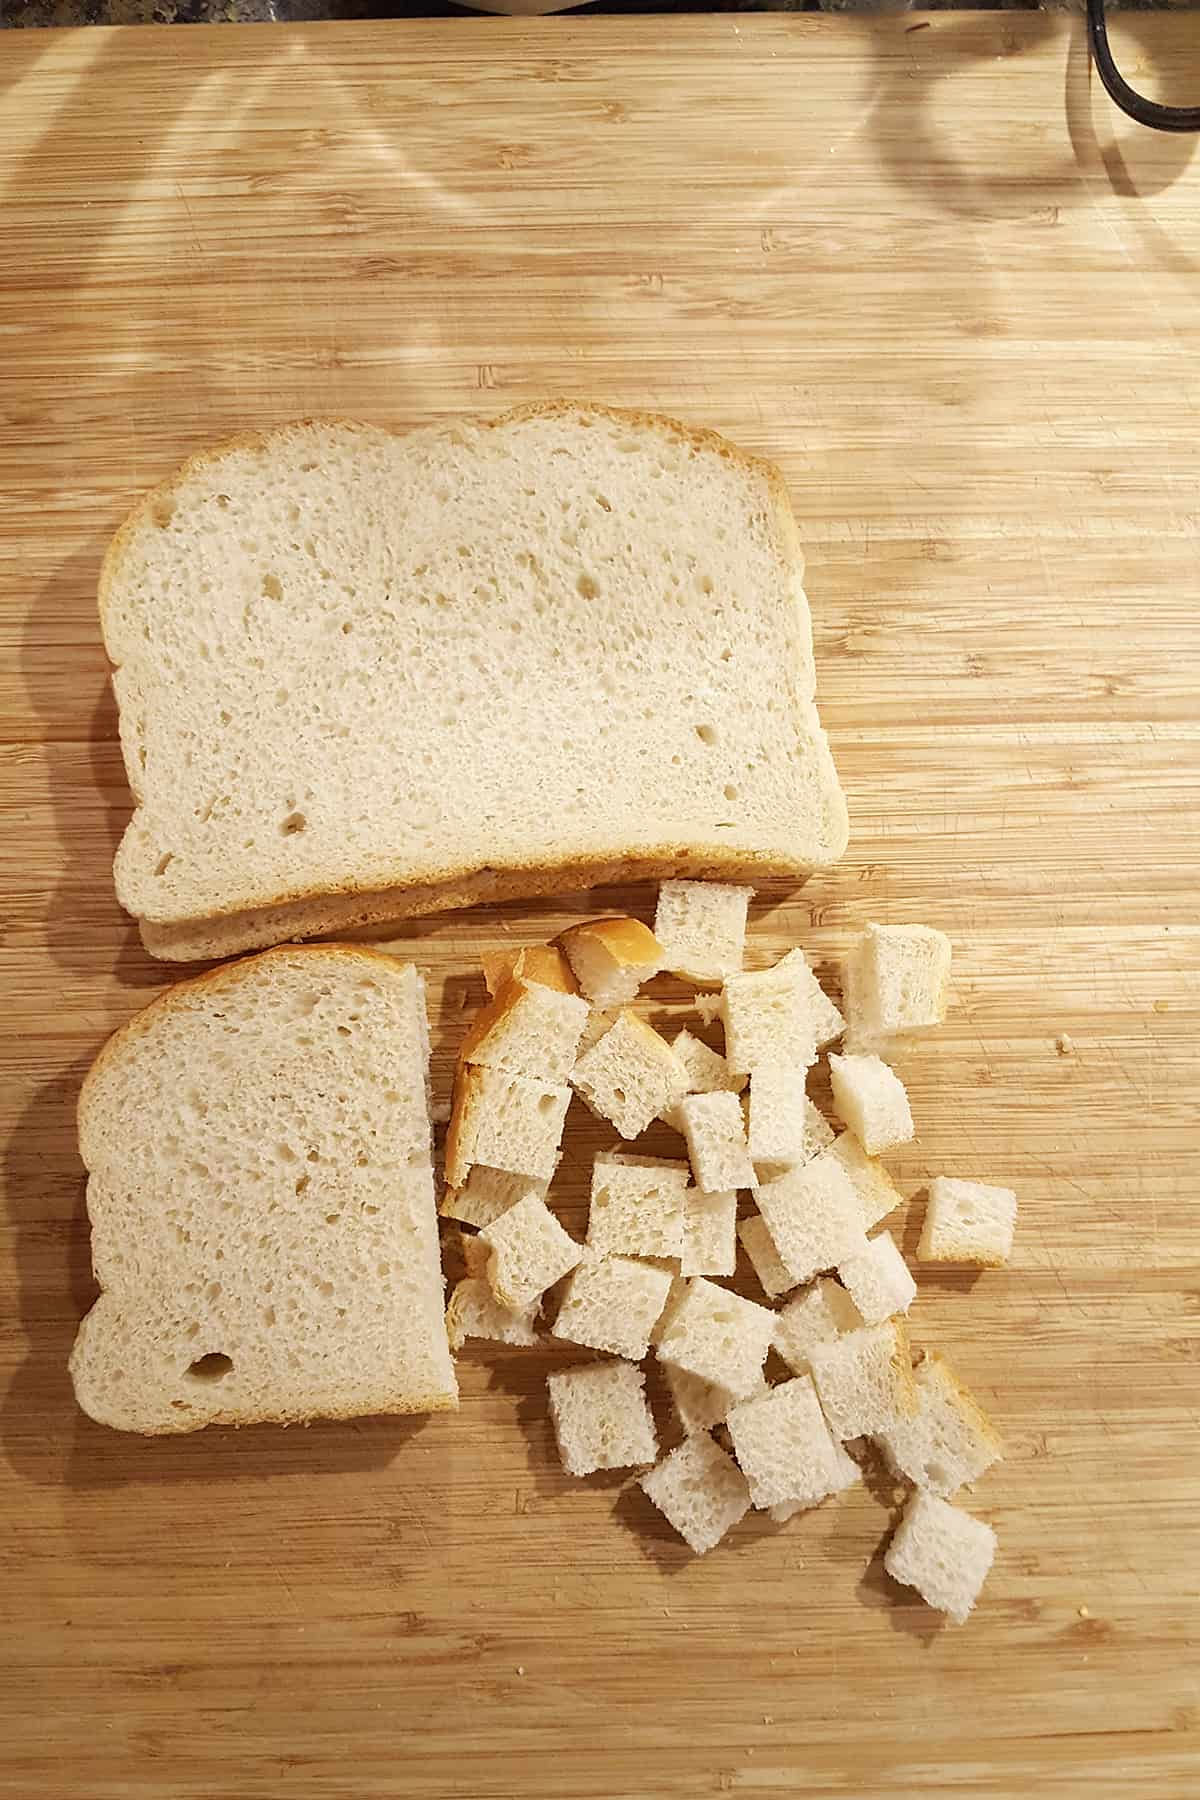 Bread slices cut into ½ inch cubes on a cutting board